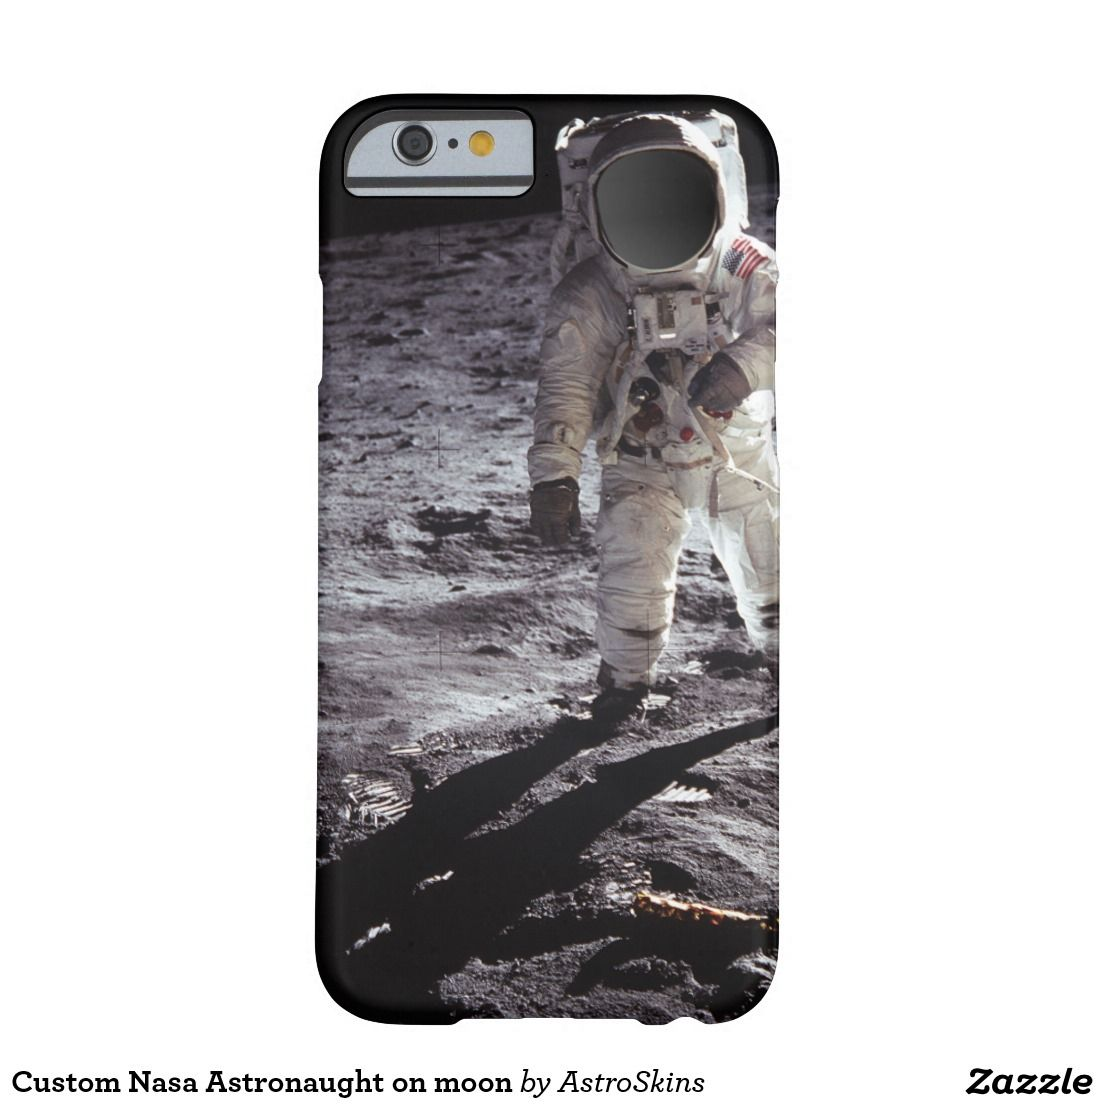 BUZZ ALDRIN ON THE MOON NASA 2 iphone case